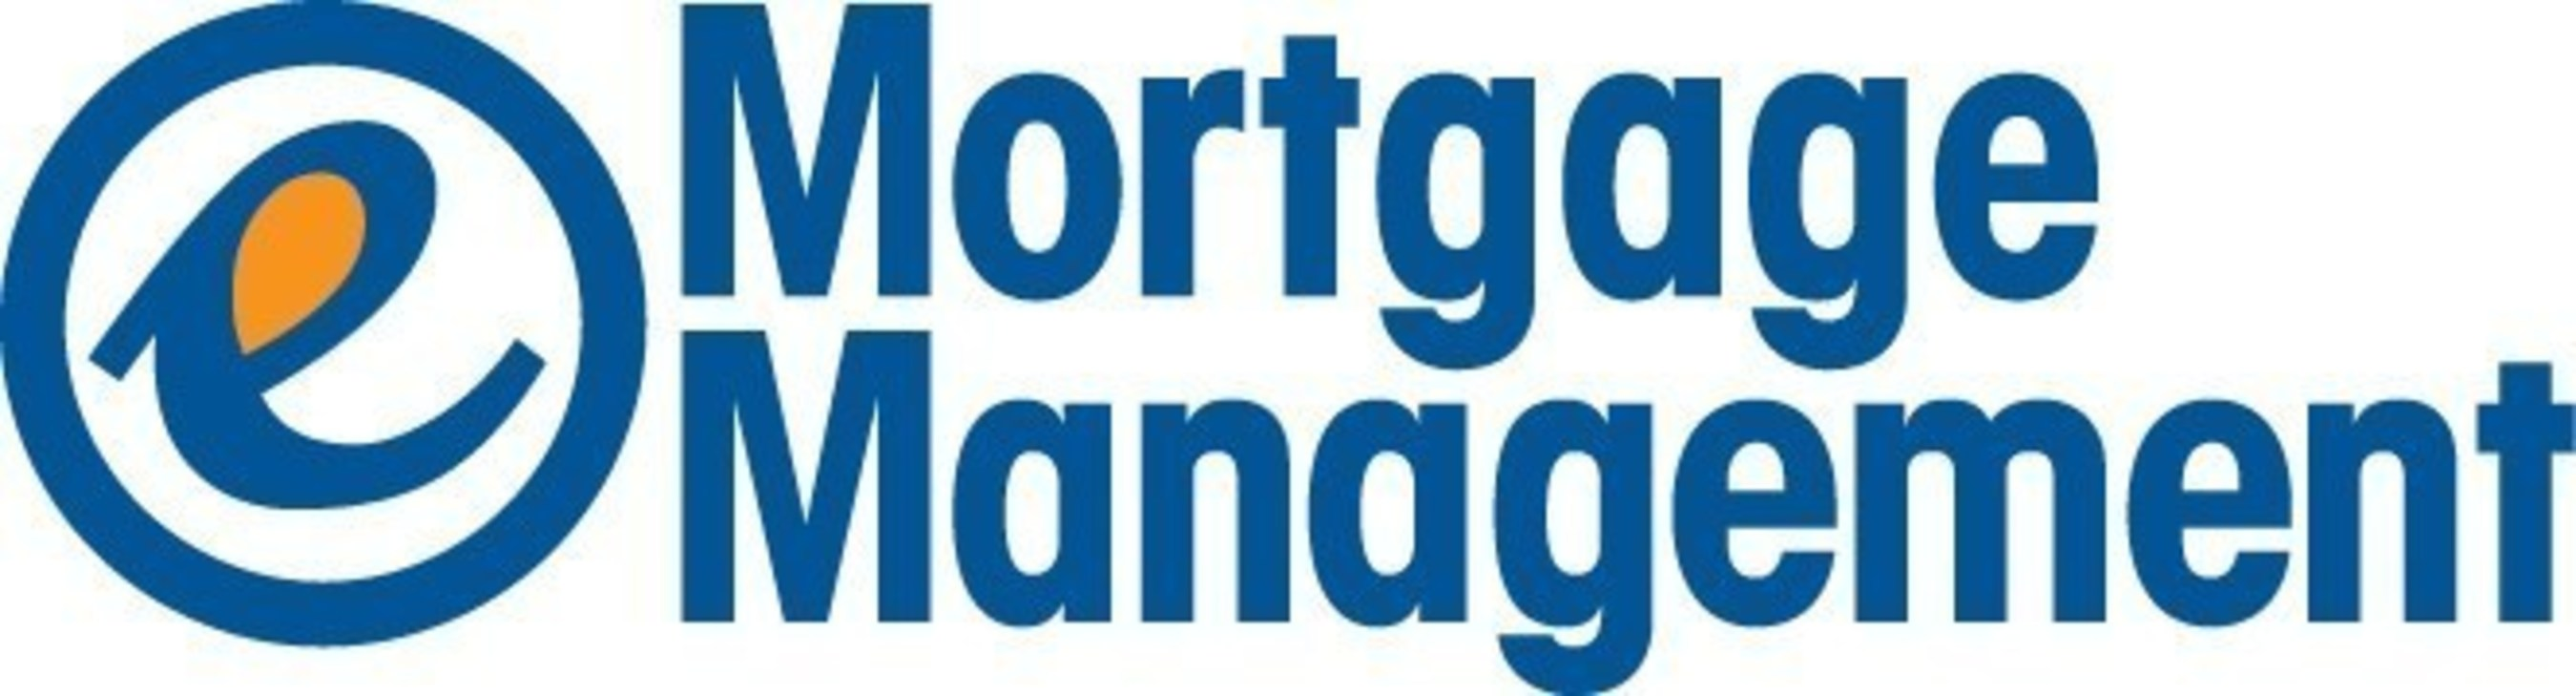 Kevin Crichton of E Mortgage Management Talks About Injecting Youth Into the Aging Mortgage